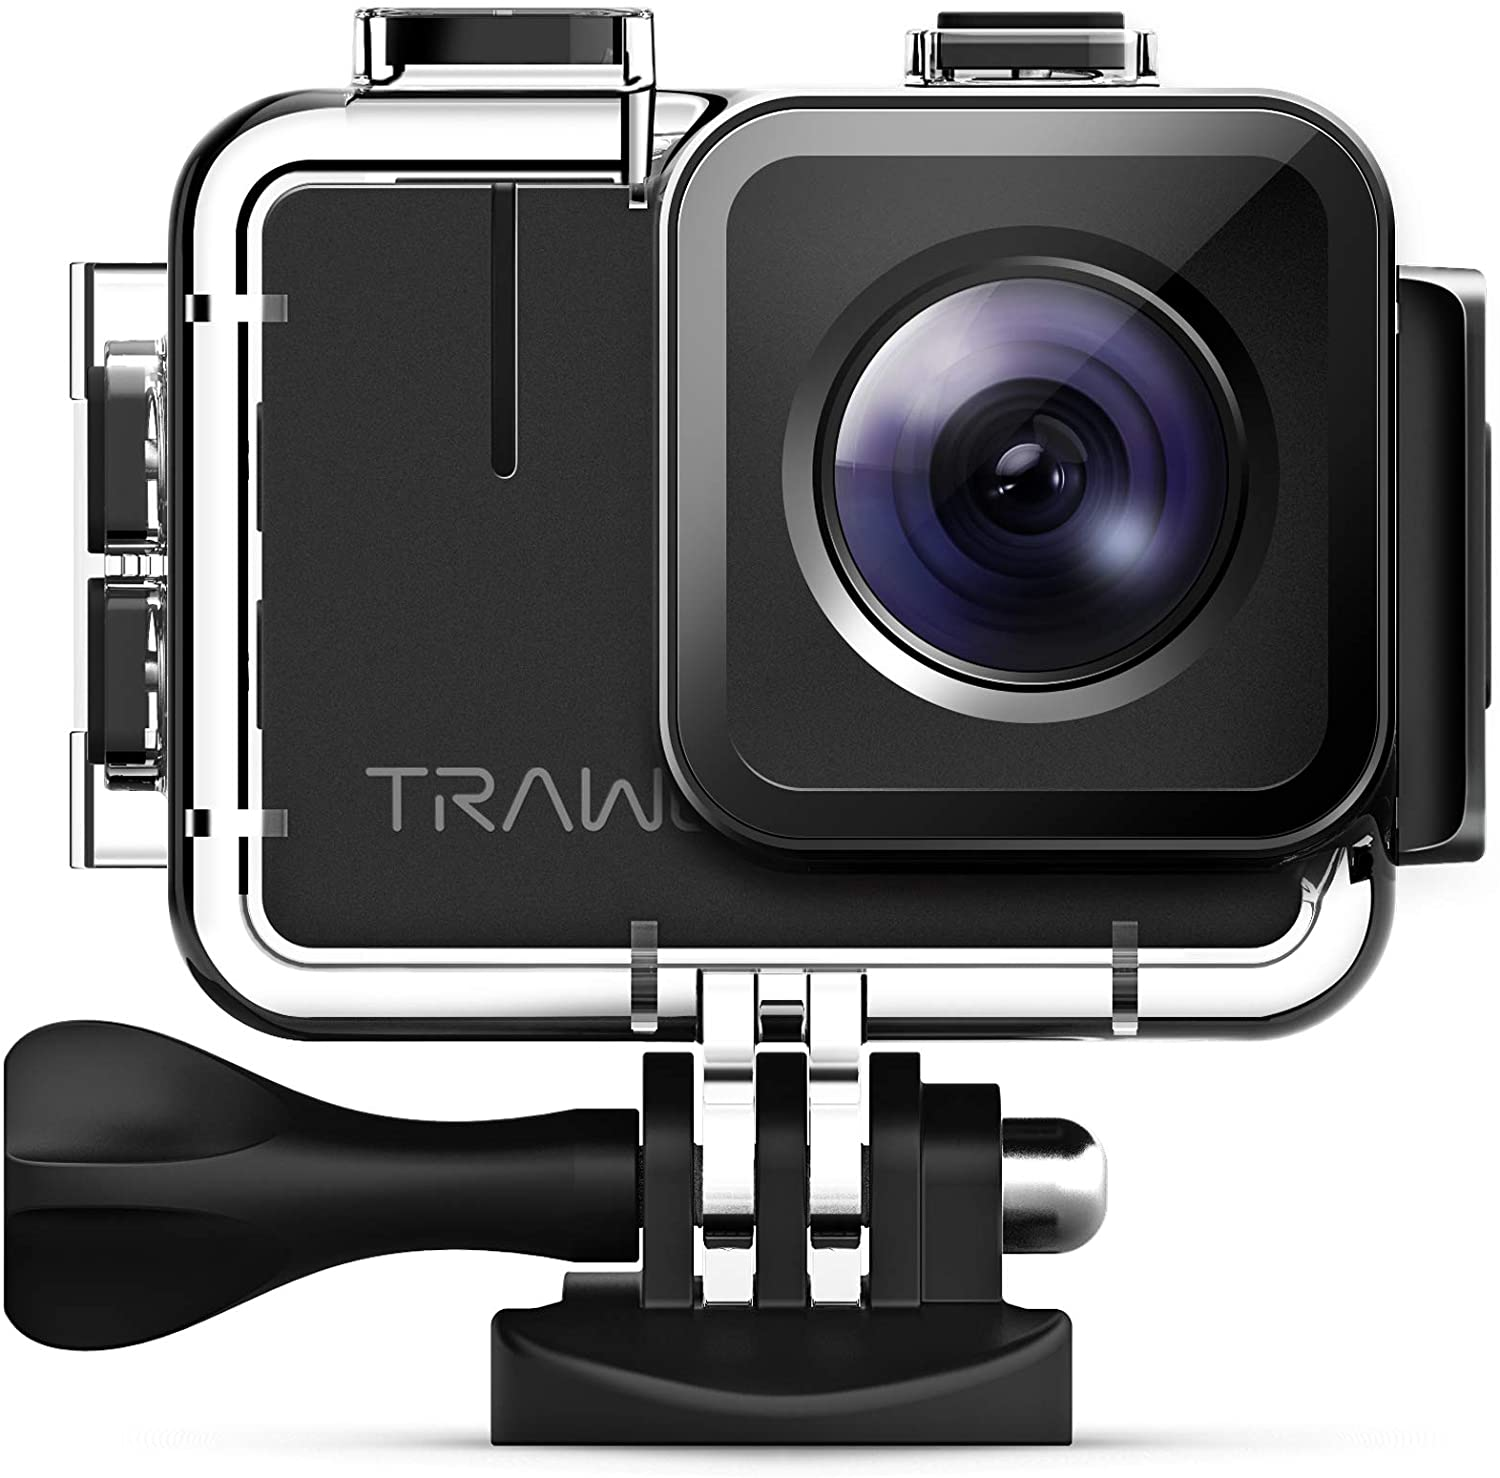 APEMAN Trawo Action Camera 4K WiFi Ultra HD 20MP Underwater Waterproof 40M Camcorder with 170 Degree Ultra-Wide $149.99 @ Amazon